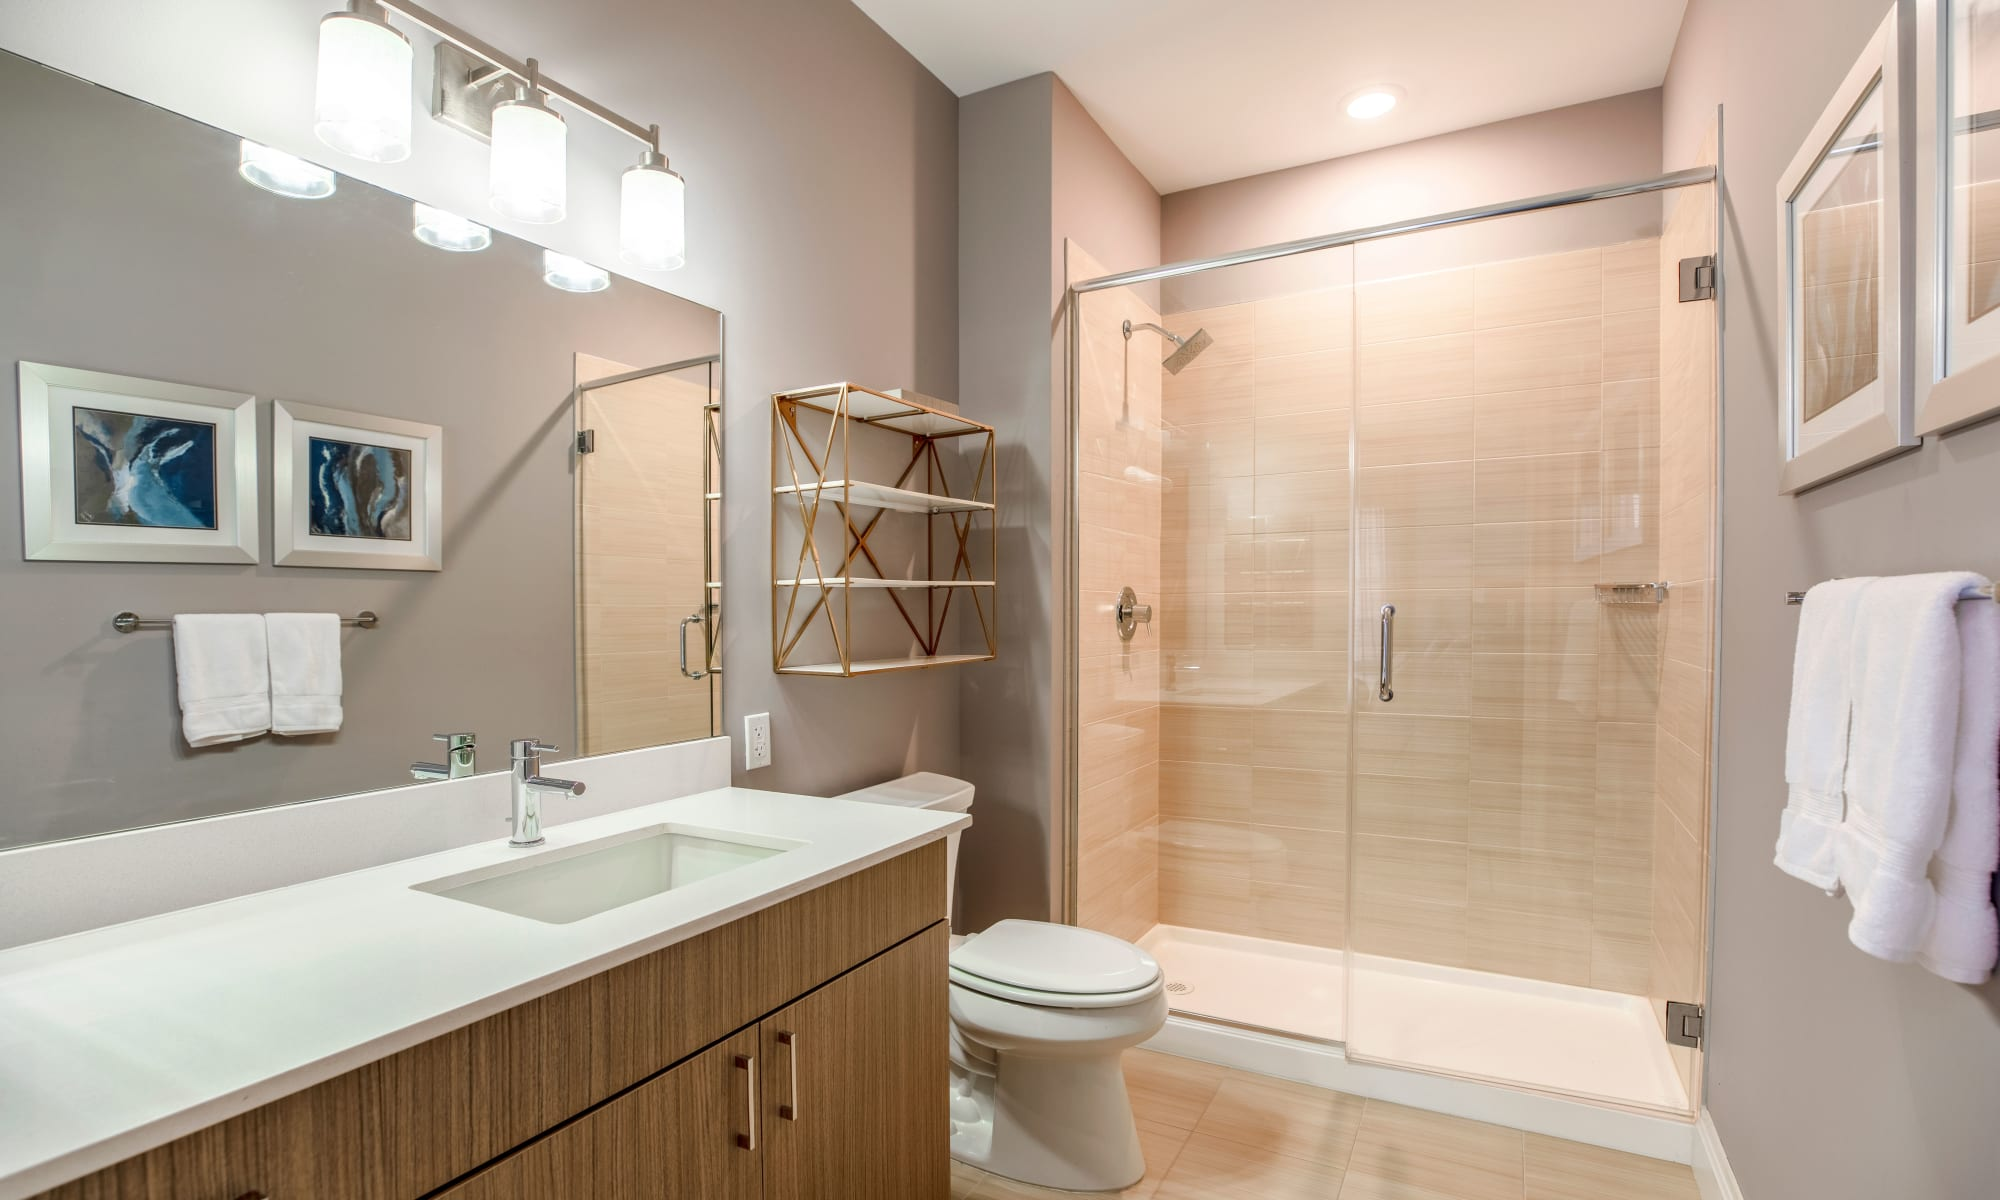 Bathroom at The Harper at Harmon Meadow in Secaucus, New Jersey